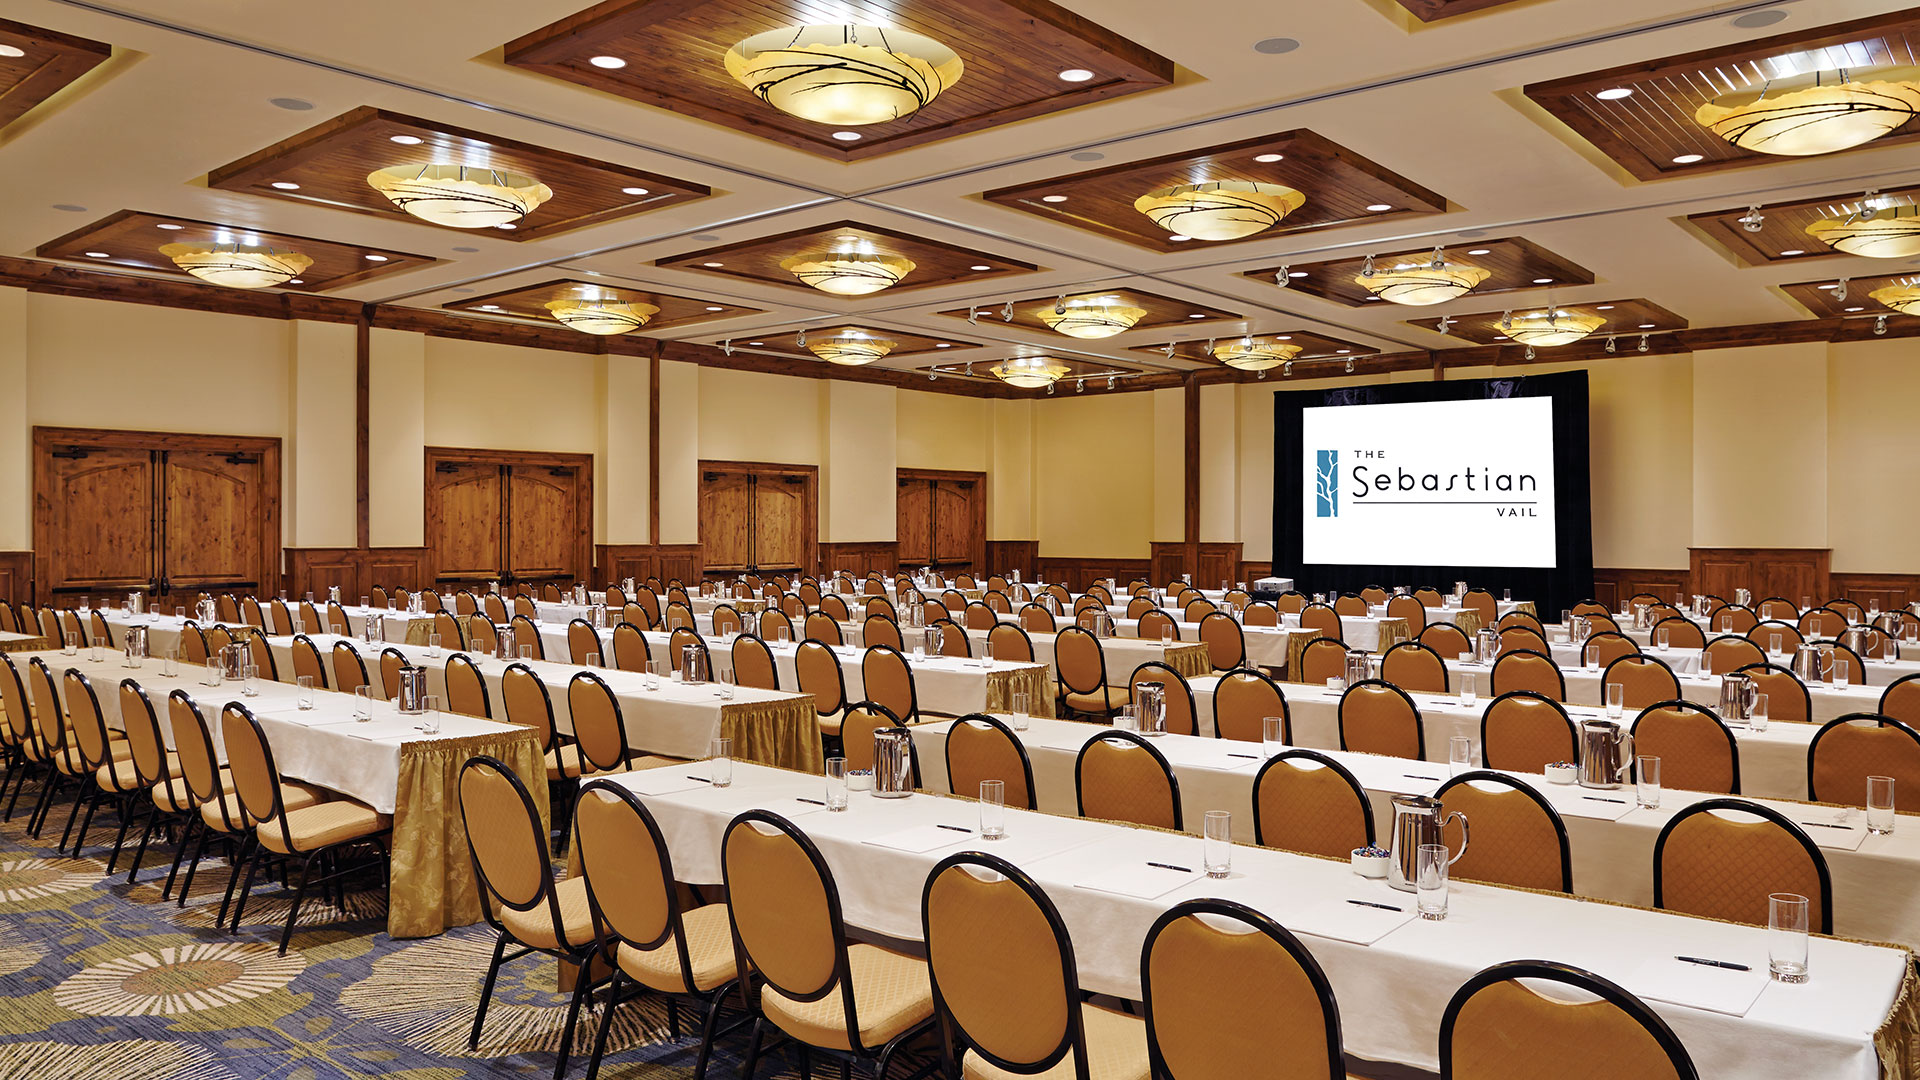 The Sebastian - Vail - Conference Space